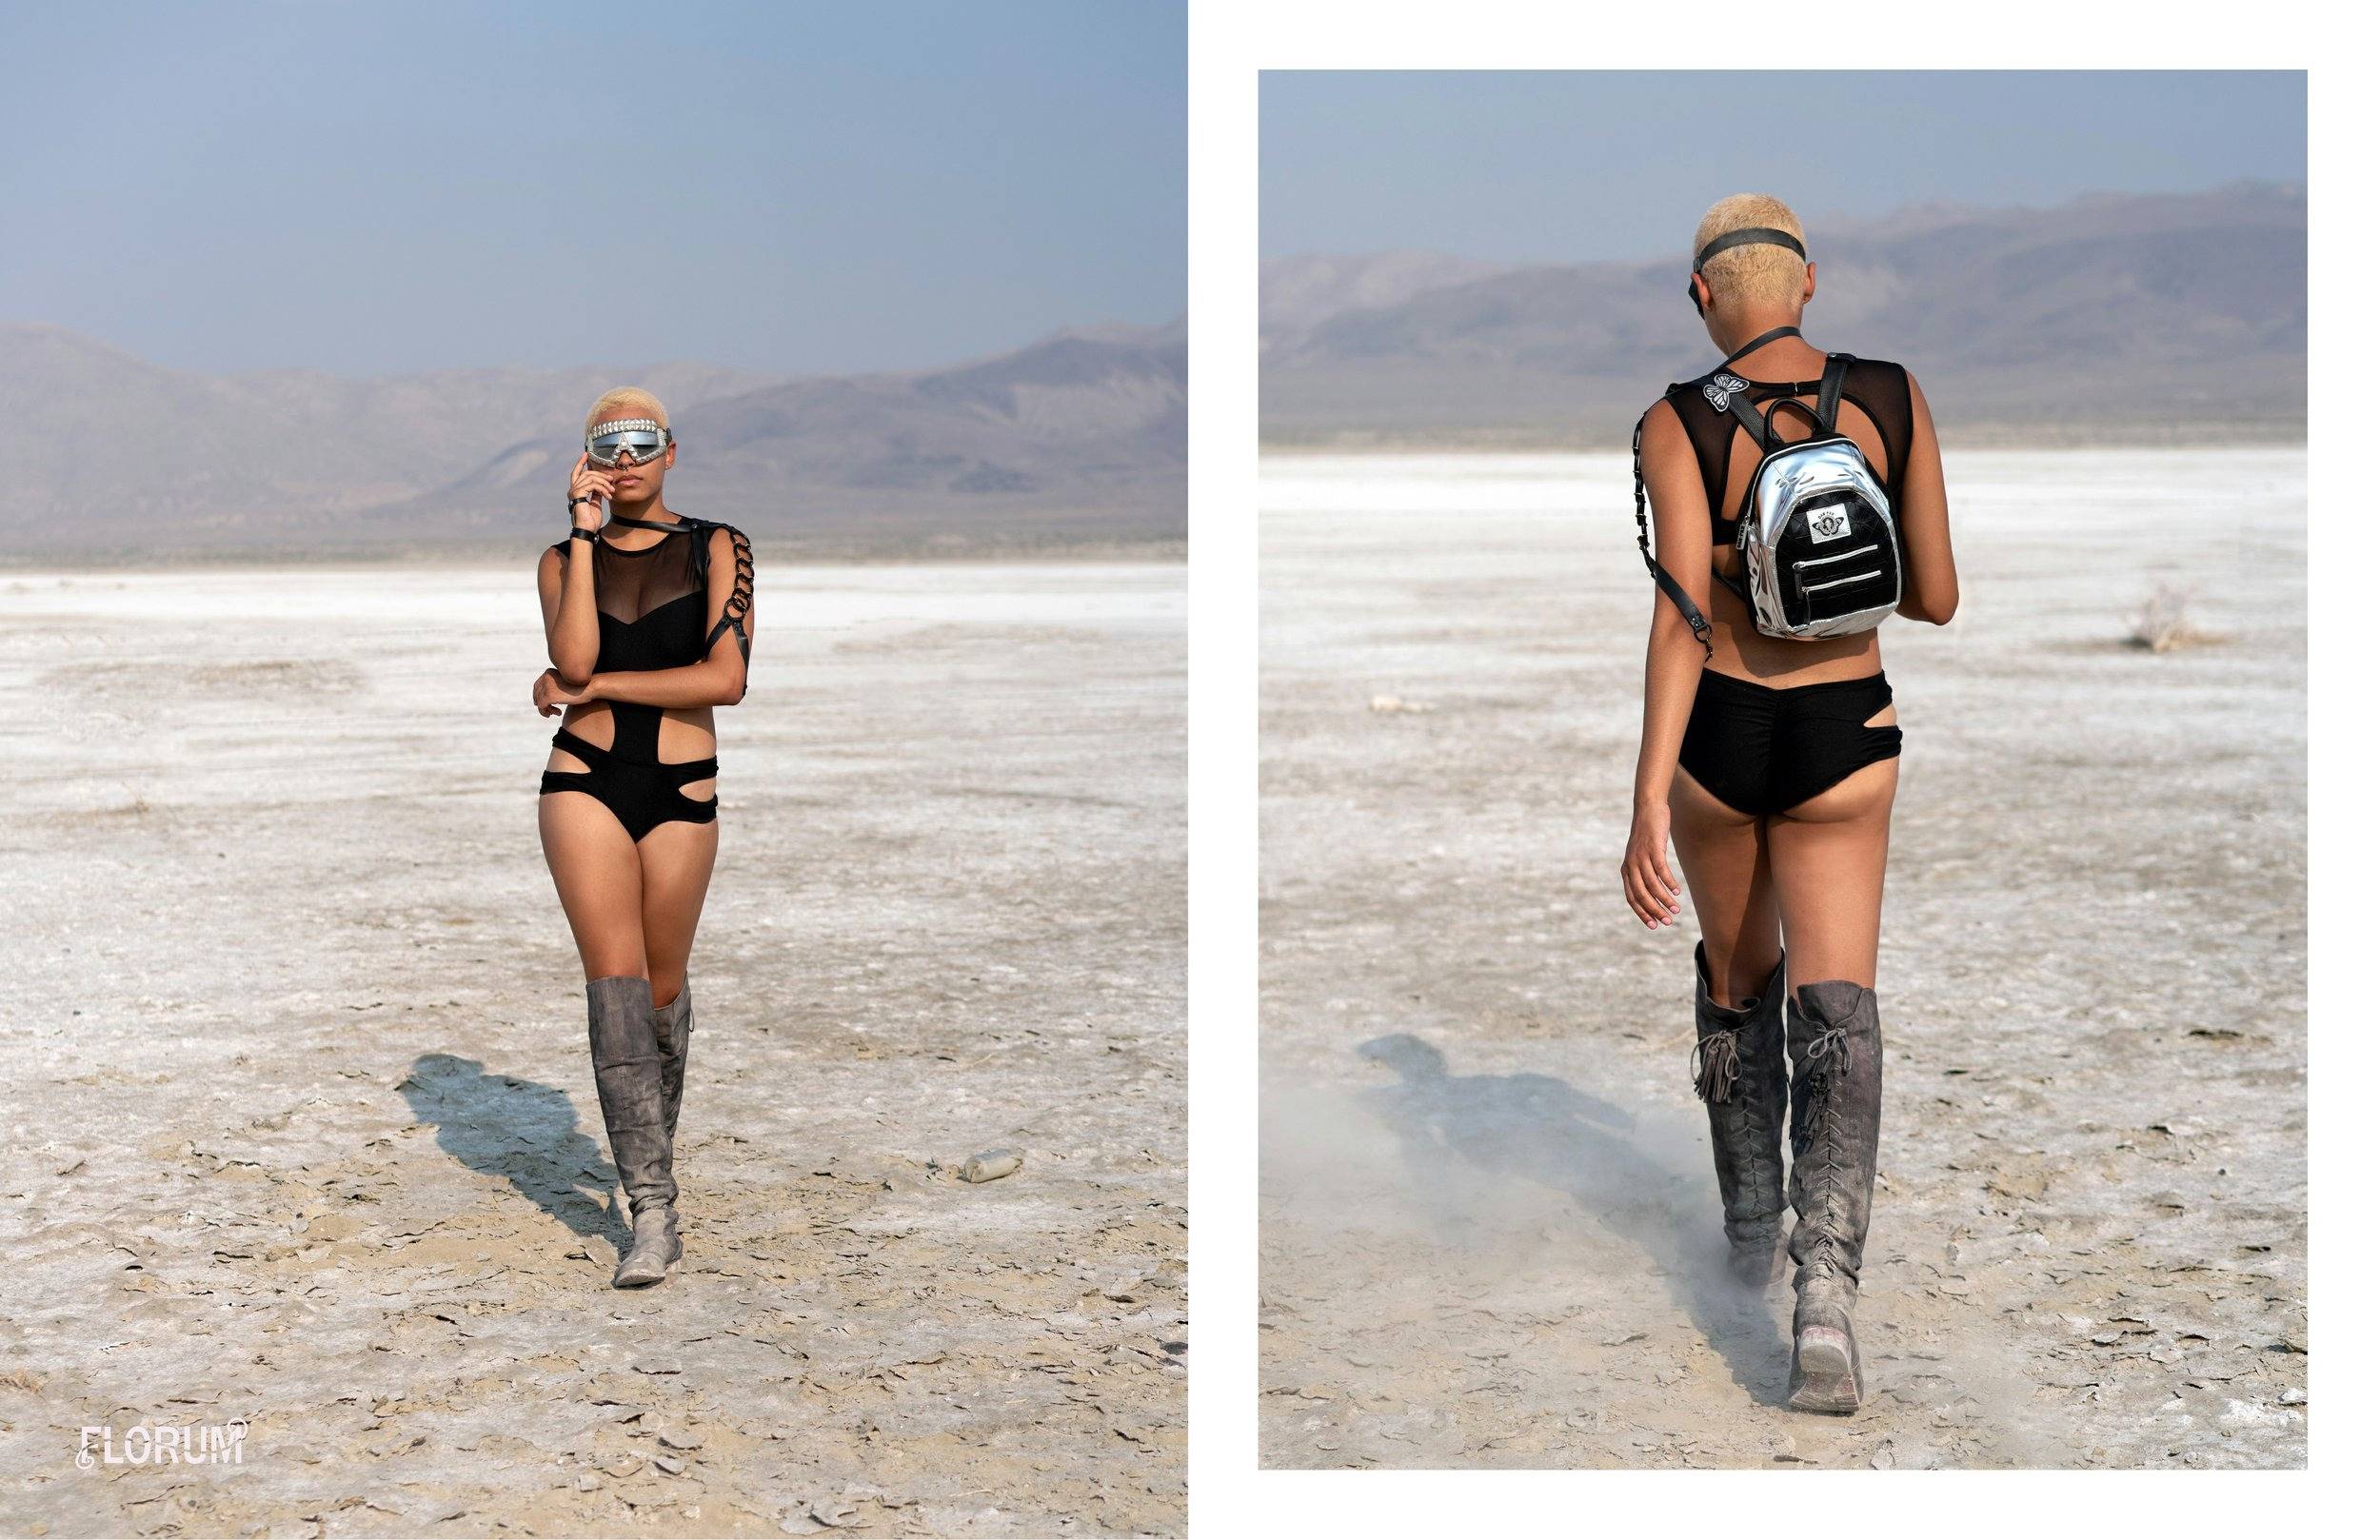 vegan festival hydration pack  black tar mini   DAN PAK  $40  shop here       made in california    armored glory goggles  CHLOES CURIOUS  $138  shop here       upcycled made in usa   body jewelry   BEATRICE HOLIDAY    contact for price    shop here       made in usa    black strappy cutout bodysuit     I HEART RAVES  $35  shop here